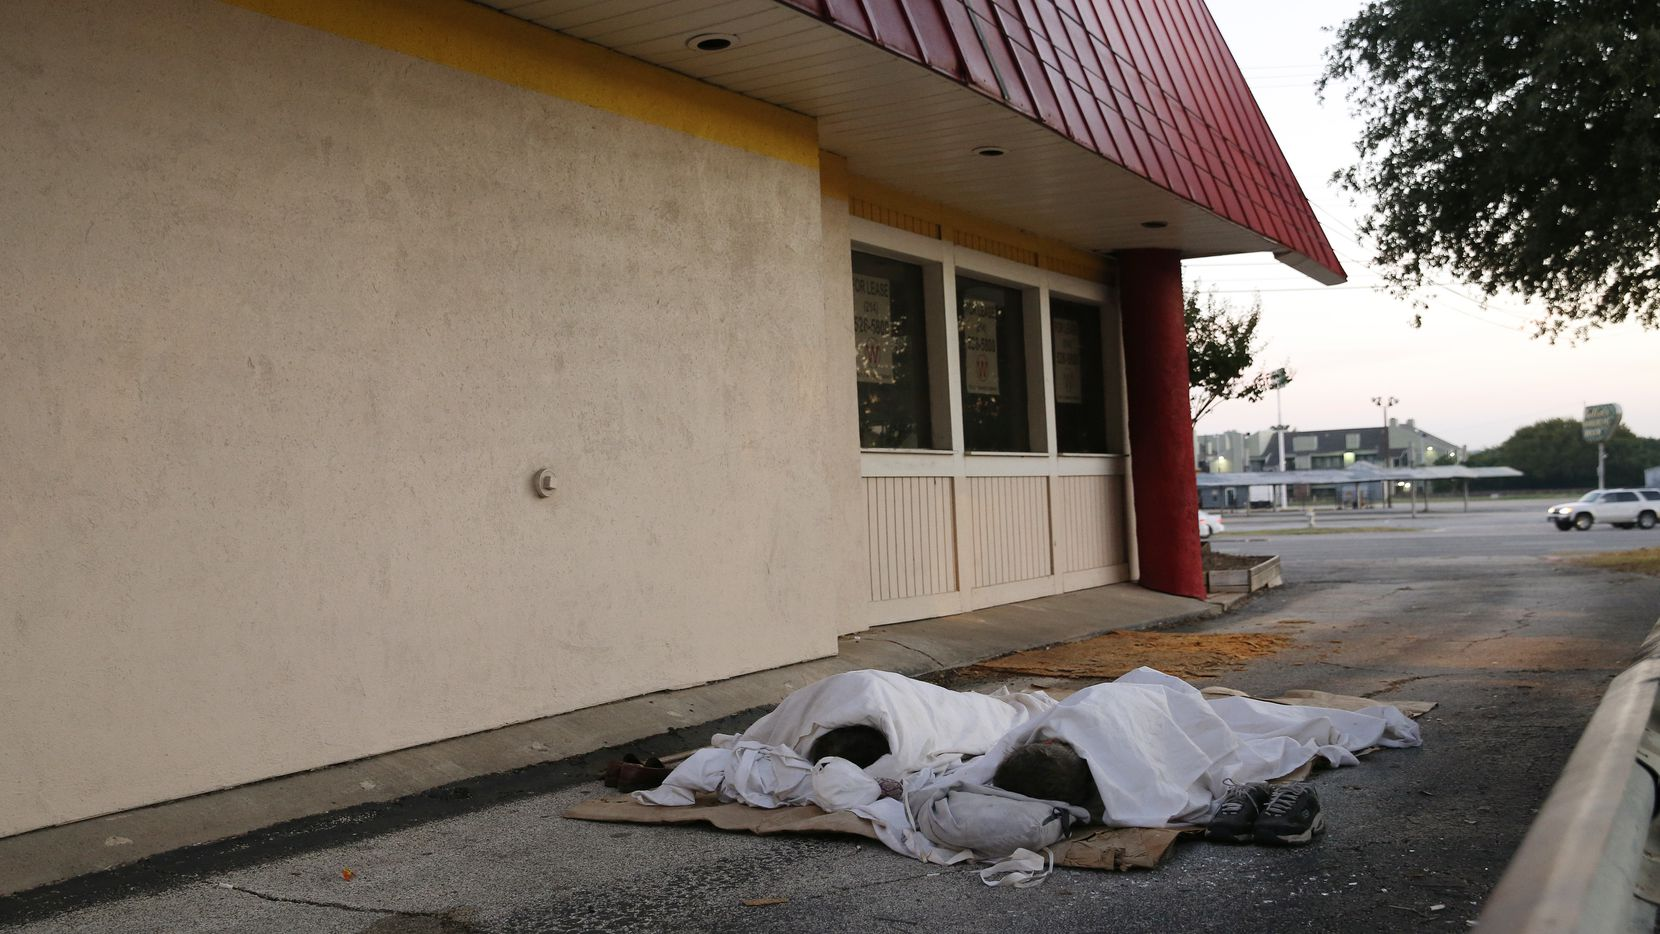 Two homeless men sleep in the driveway of a closed payday loan store located at 6534 East Northwest Highway in Dallas, Texas on Thursday September 25, 2014. Dozens of payday loan stores in Dallas have closed since the city passed a landmark ordinance regulating the lenders three years ago. It's just one way, city officials and consumer advocates said, that the ordinance has had an impact on an industry that they say preys on low-income residents and traps them in a cycle of debt. (David Woo/The Dallas Morning News) 09282014xNEWS